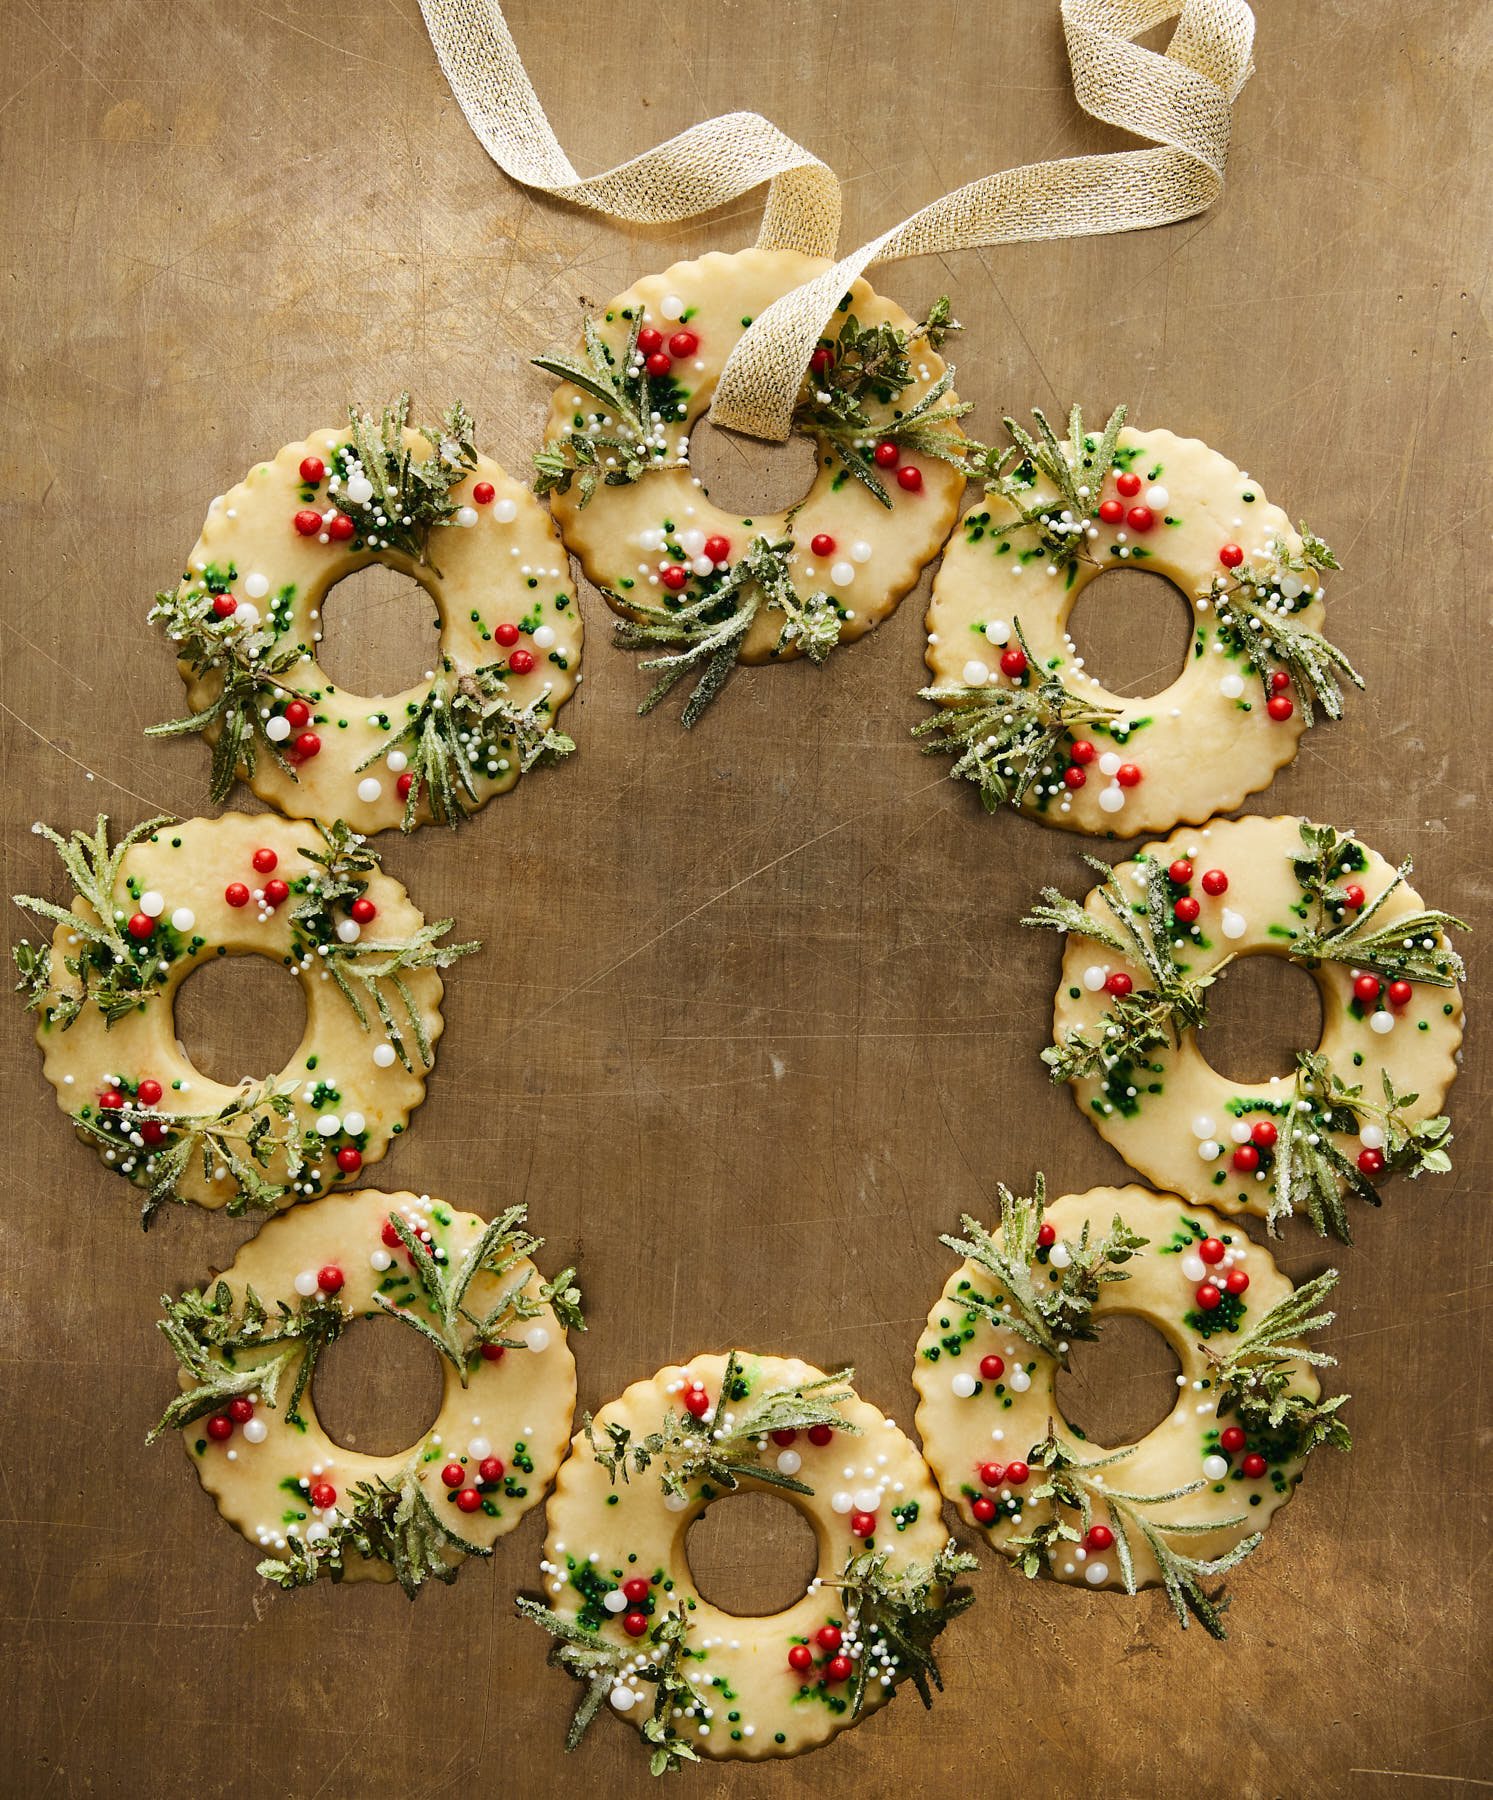 wreath-cookies-v2-154-RL-8568